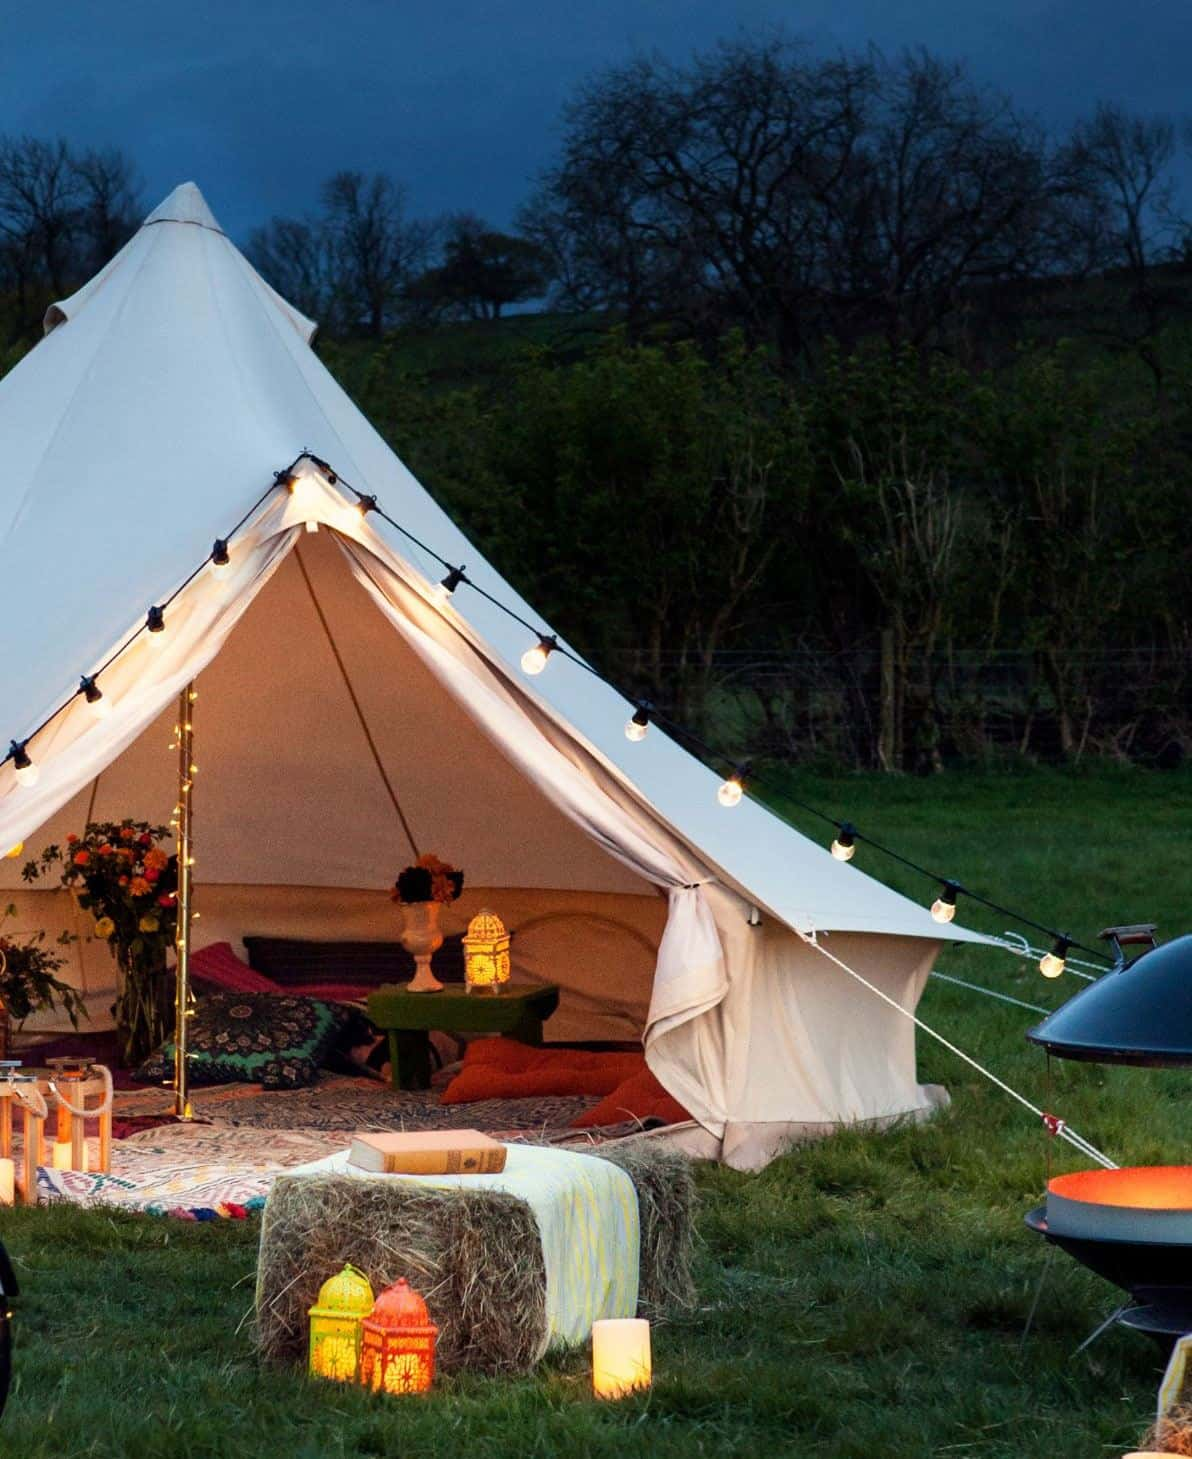 A bell tent to camp in is the perfect way to spend your summer staycation in your garden